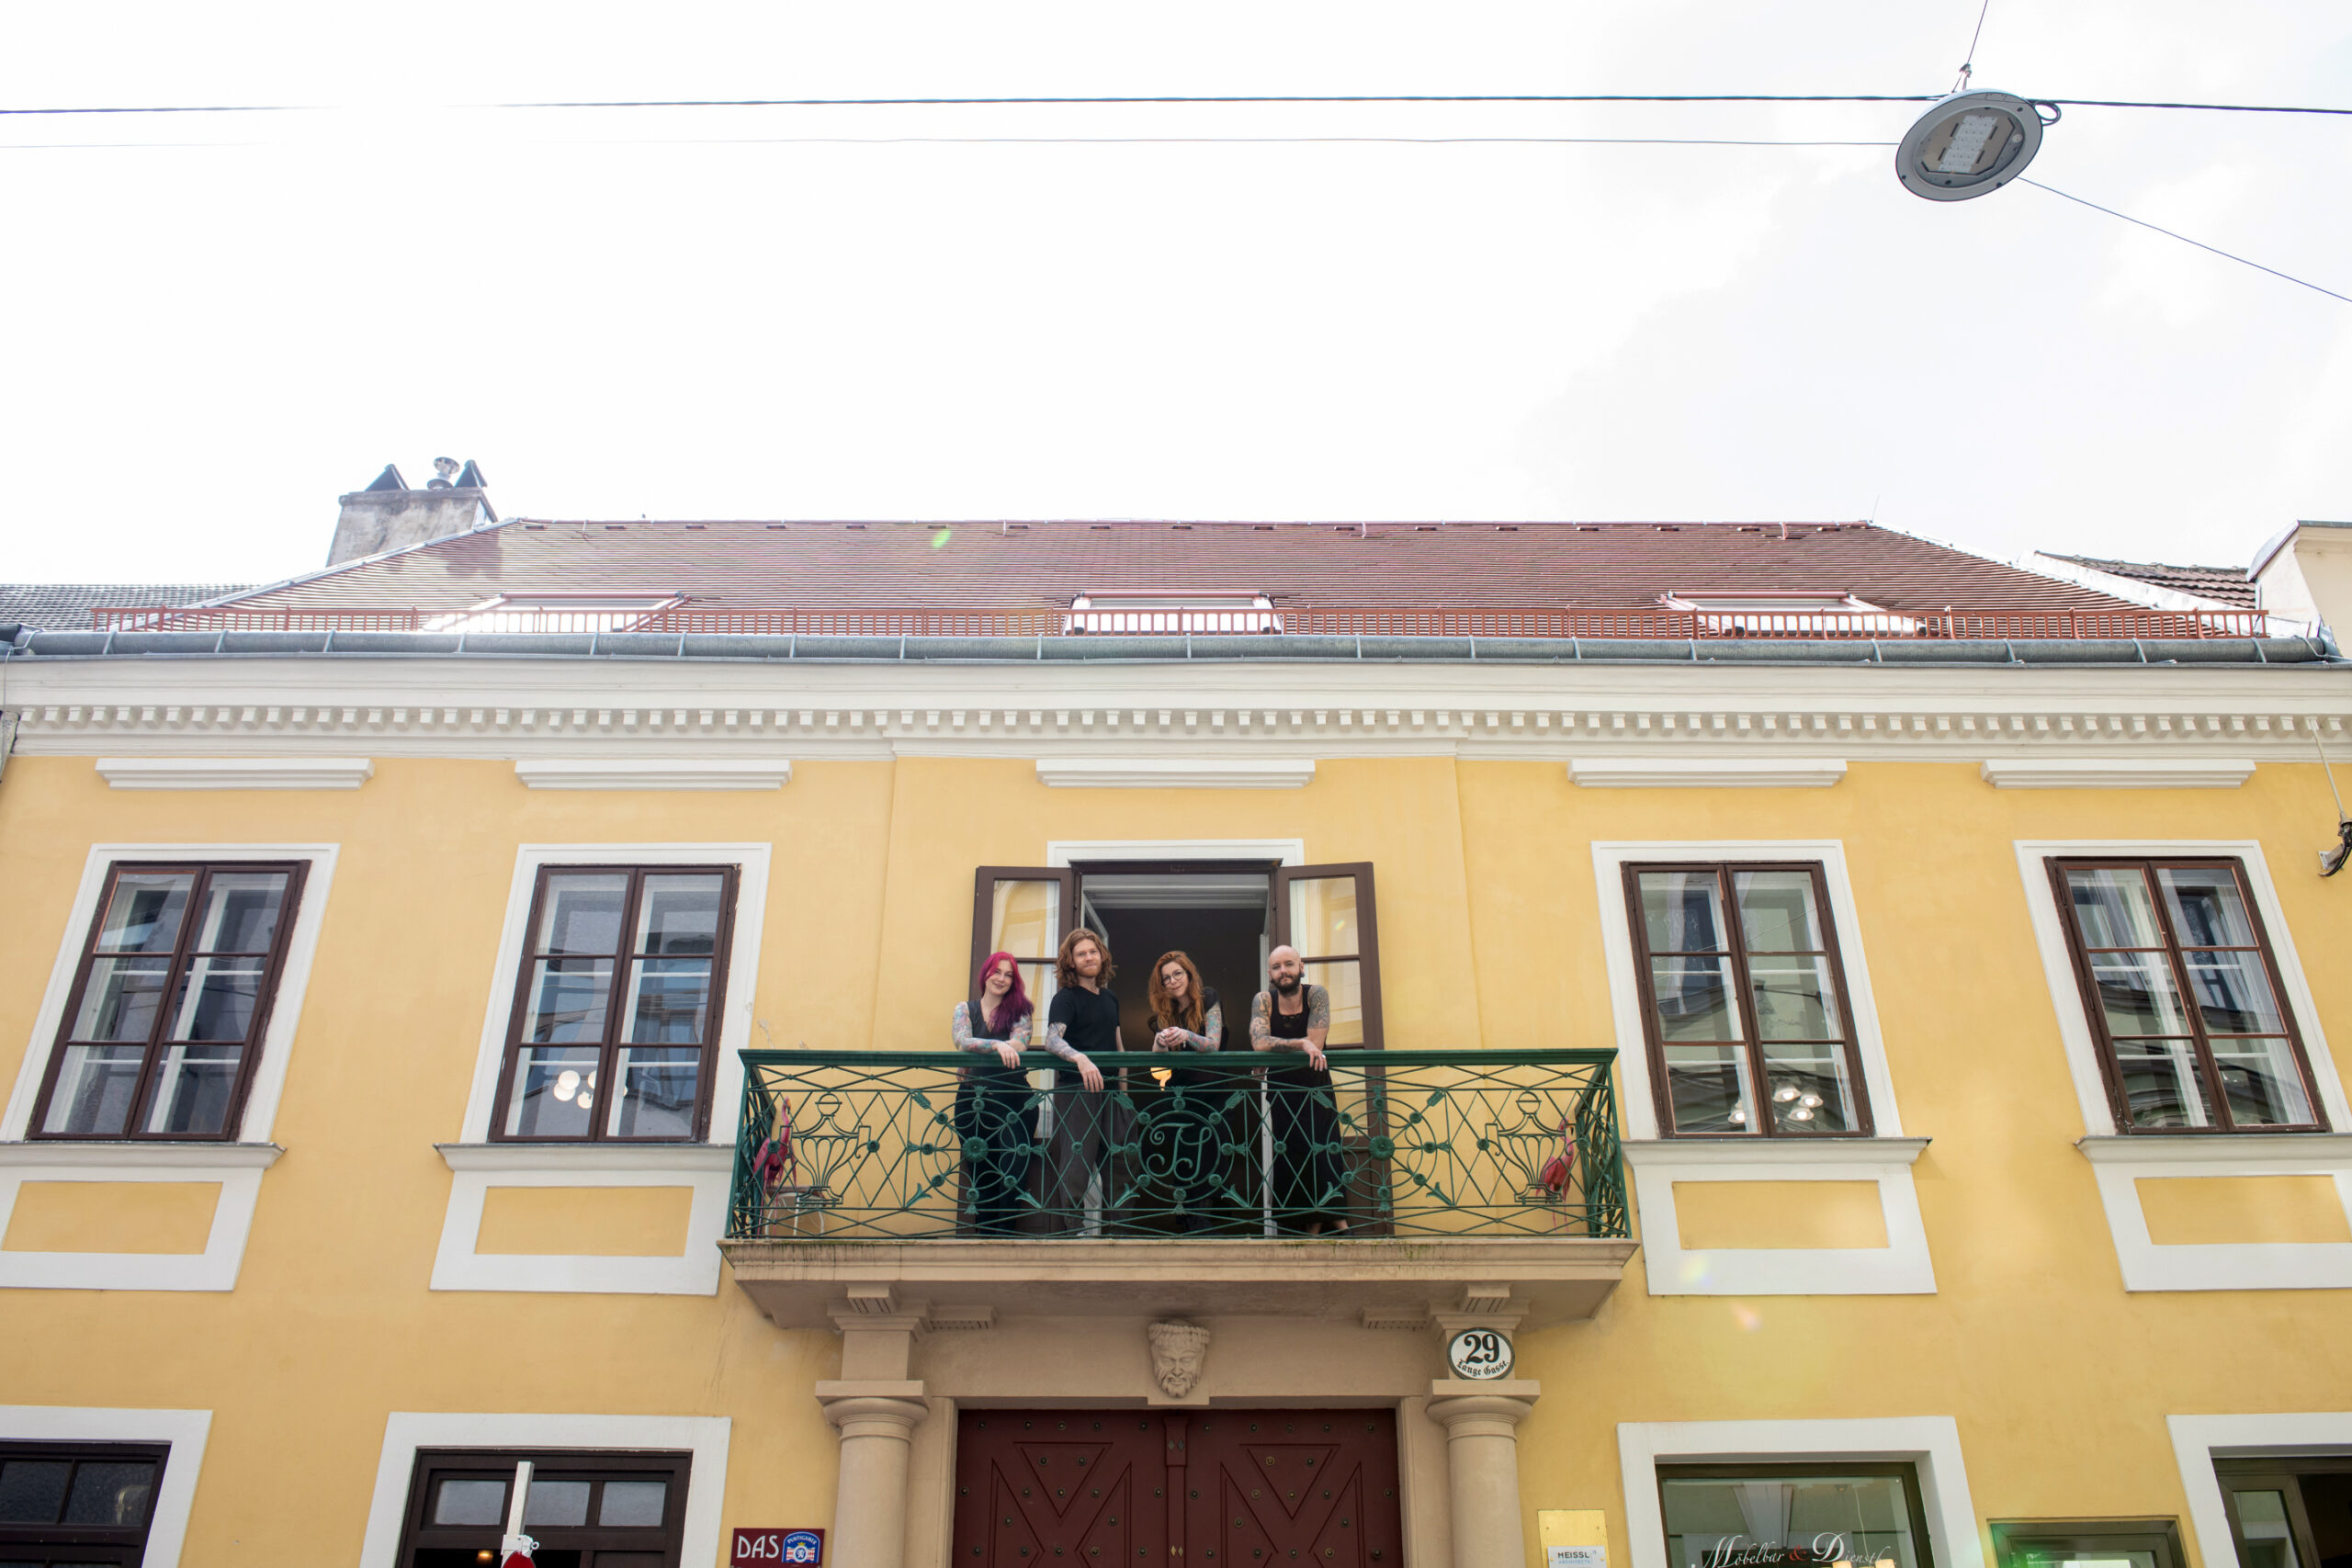 Street view of Tatuarium Tattoo Studio in Wien